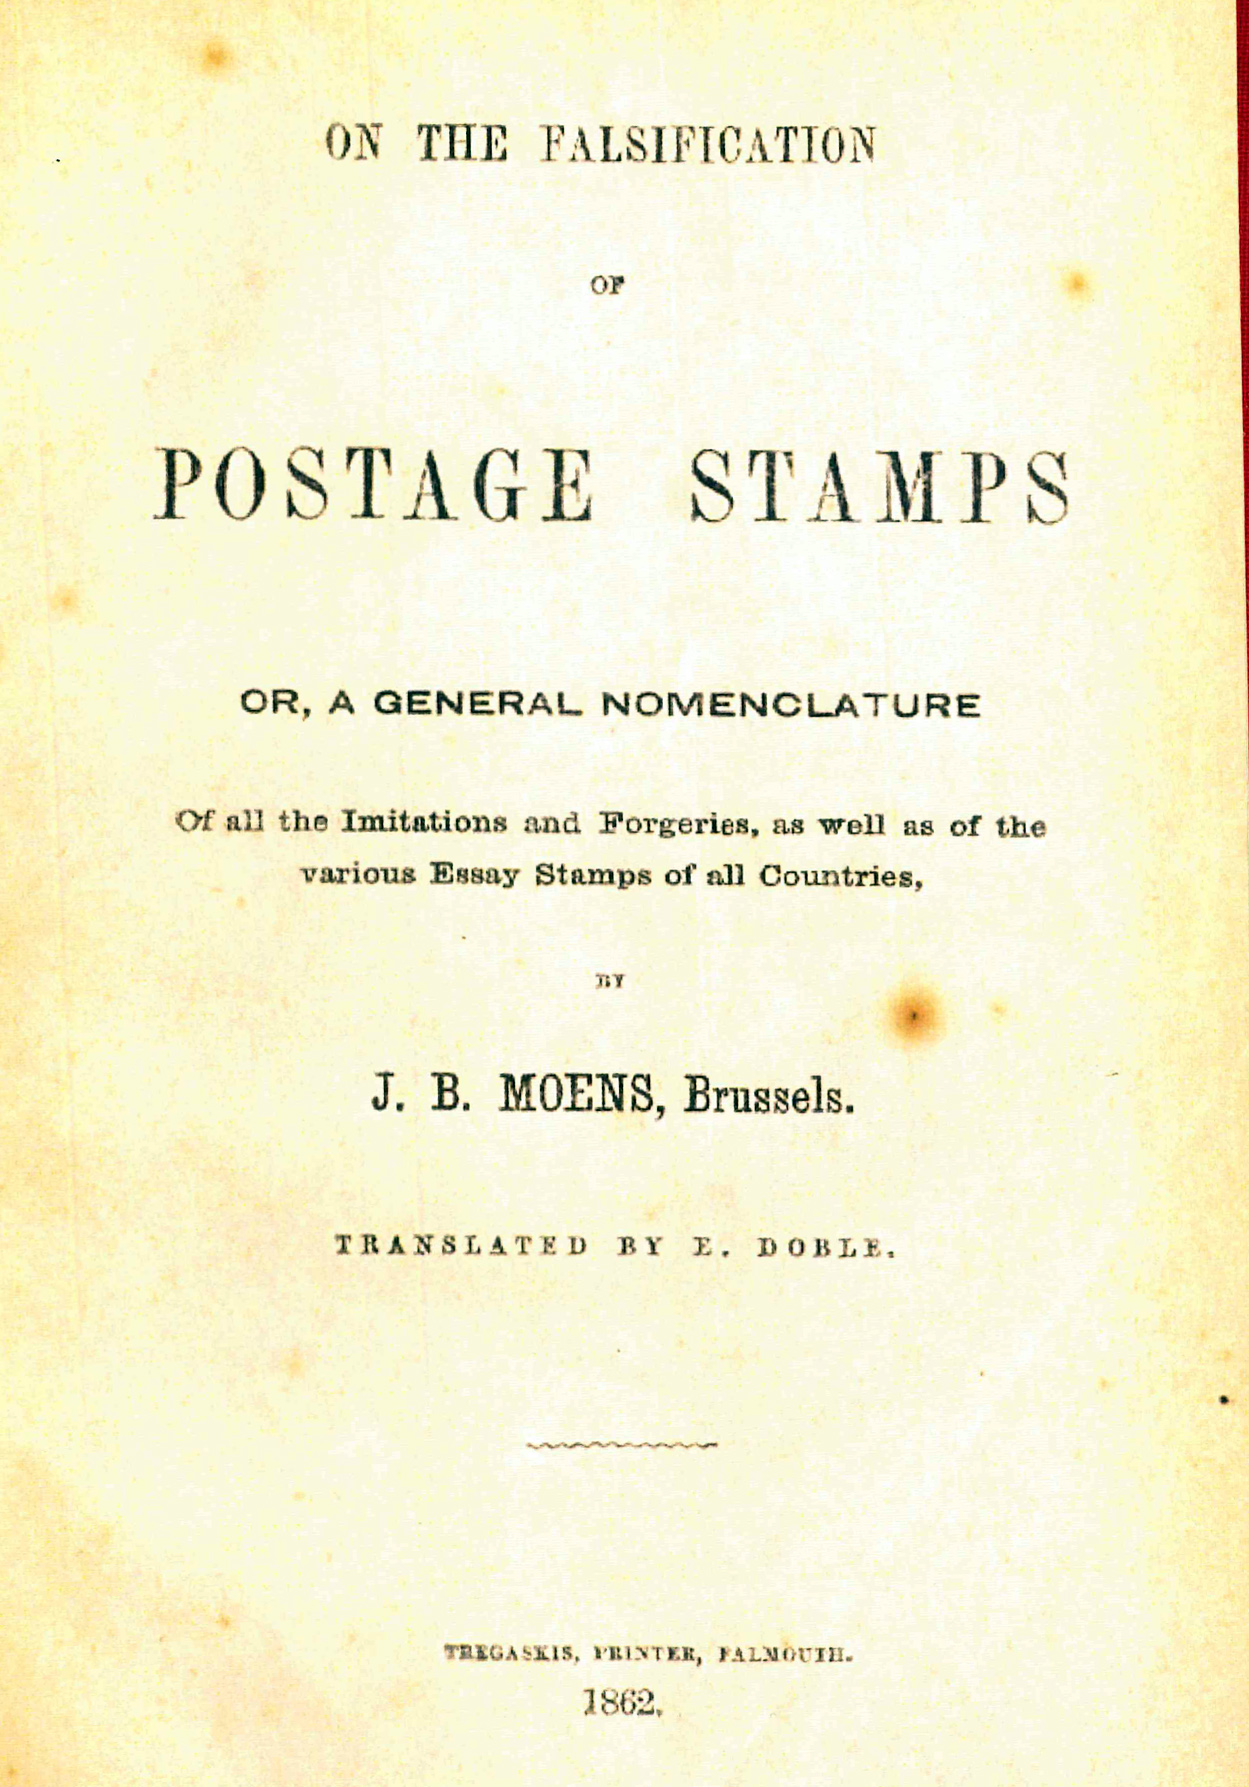 On the falsification of Postage Stamps